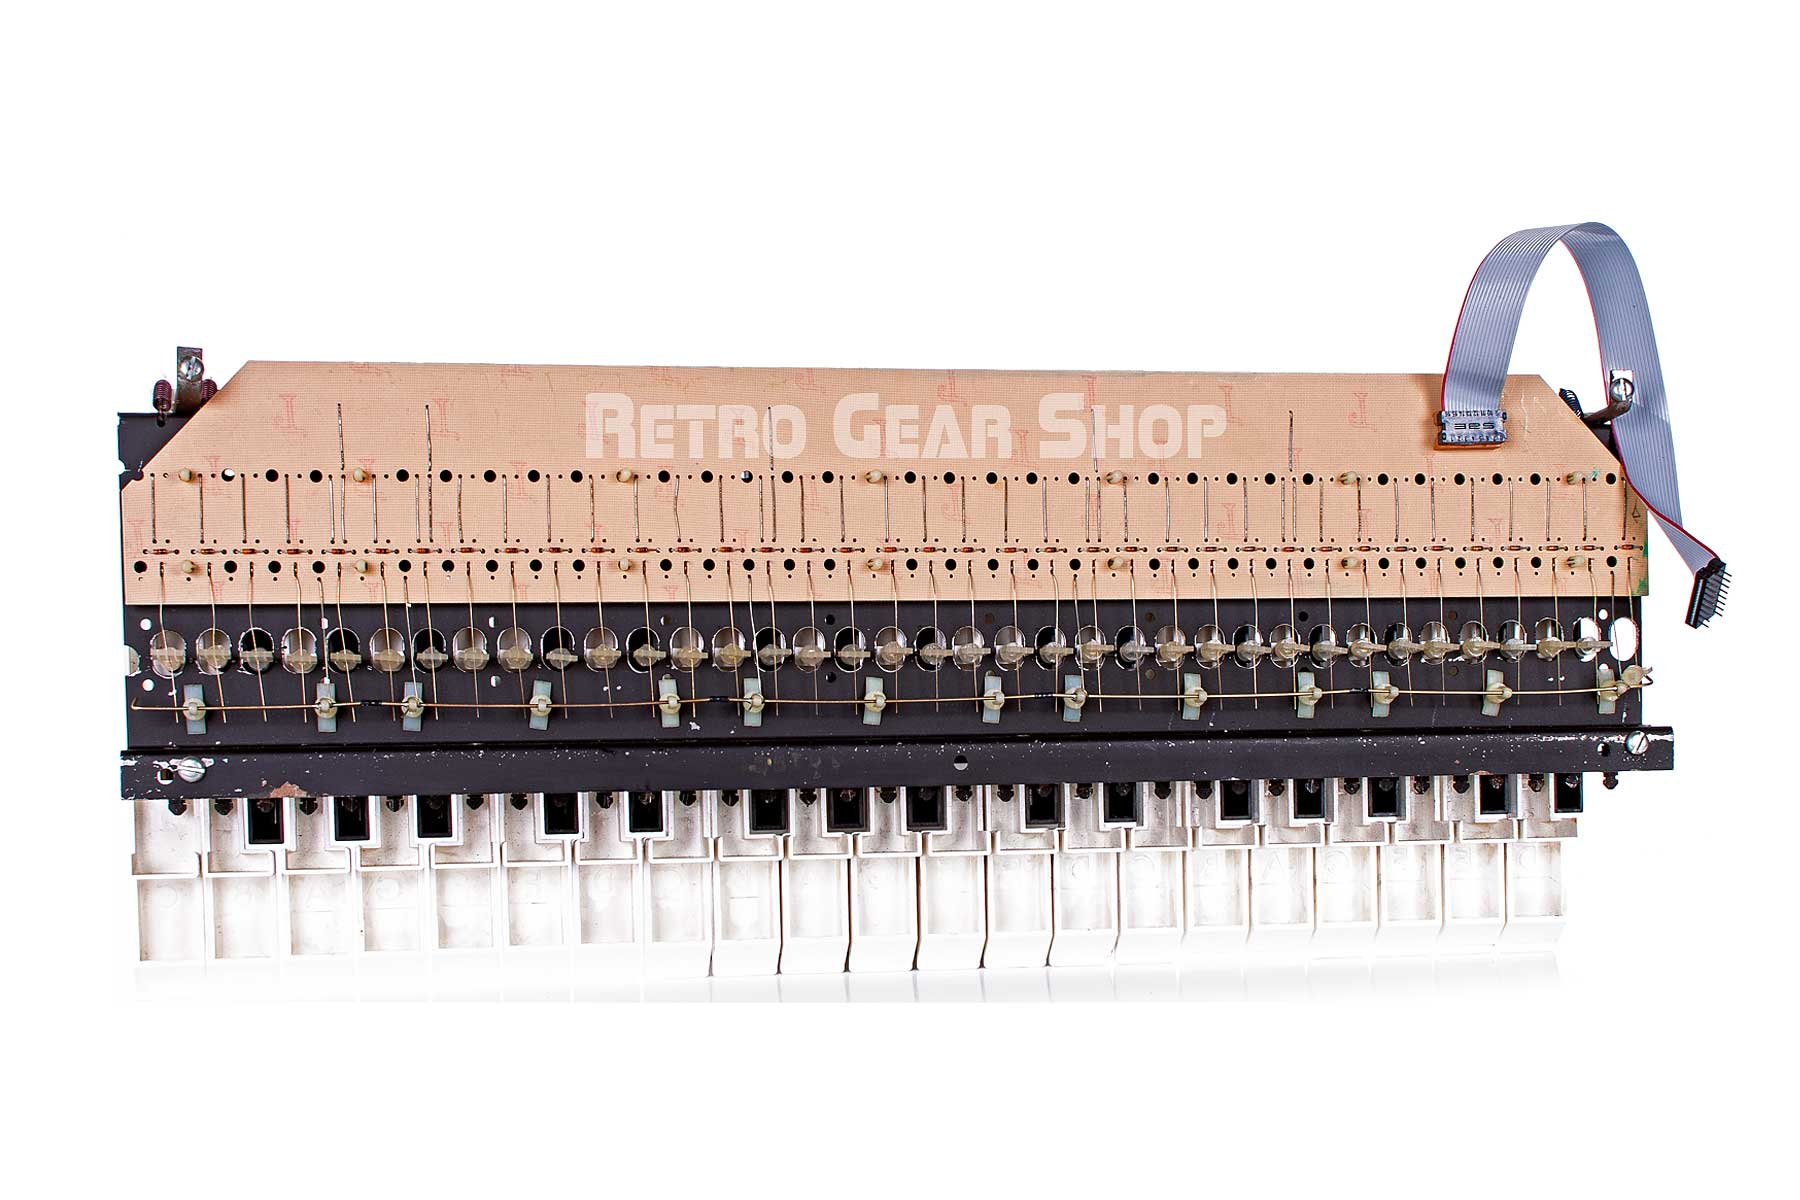 Sequential Circuits Pro One J-wire Replacement Keyboard Assembly Rear